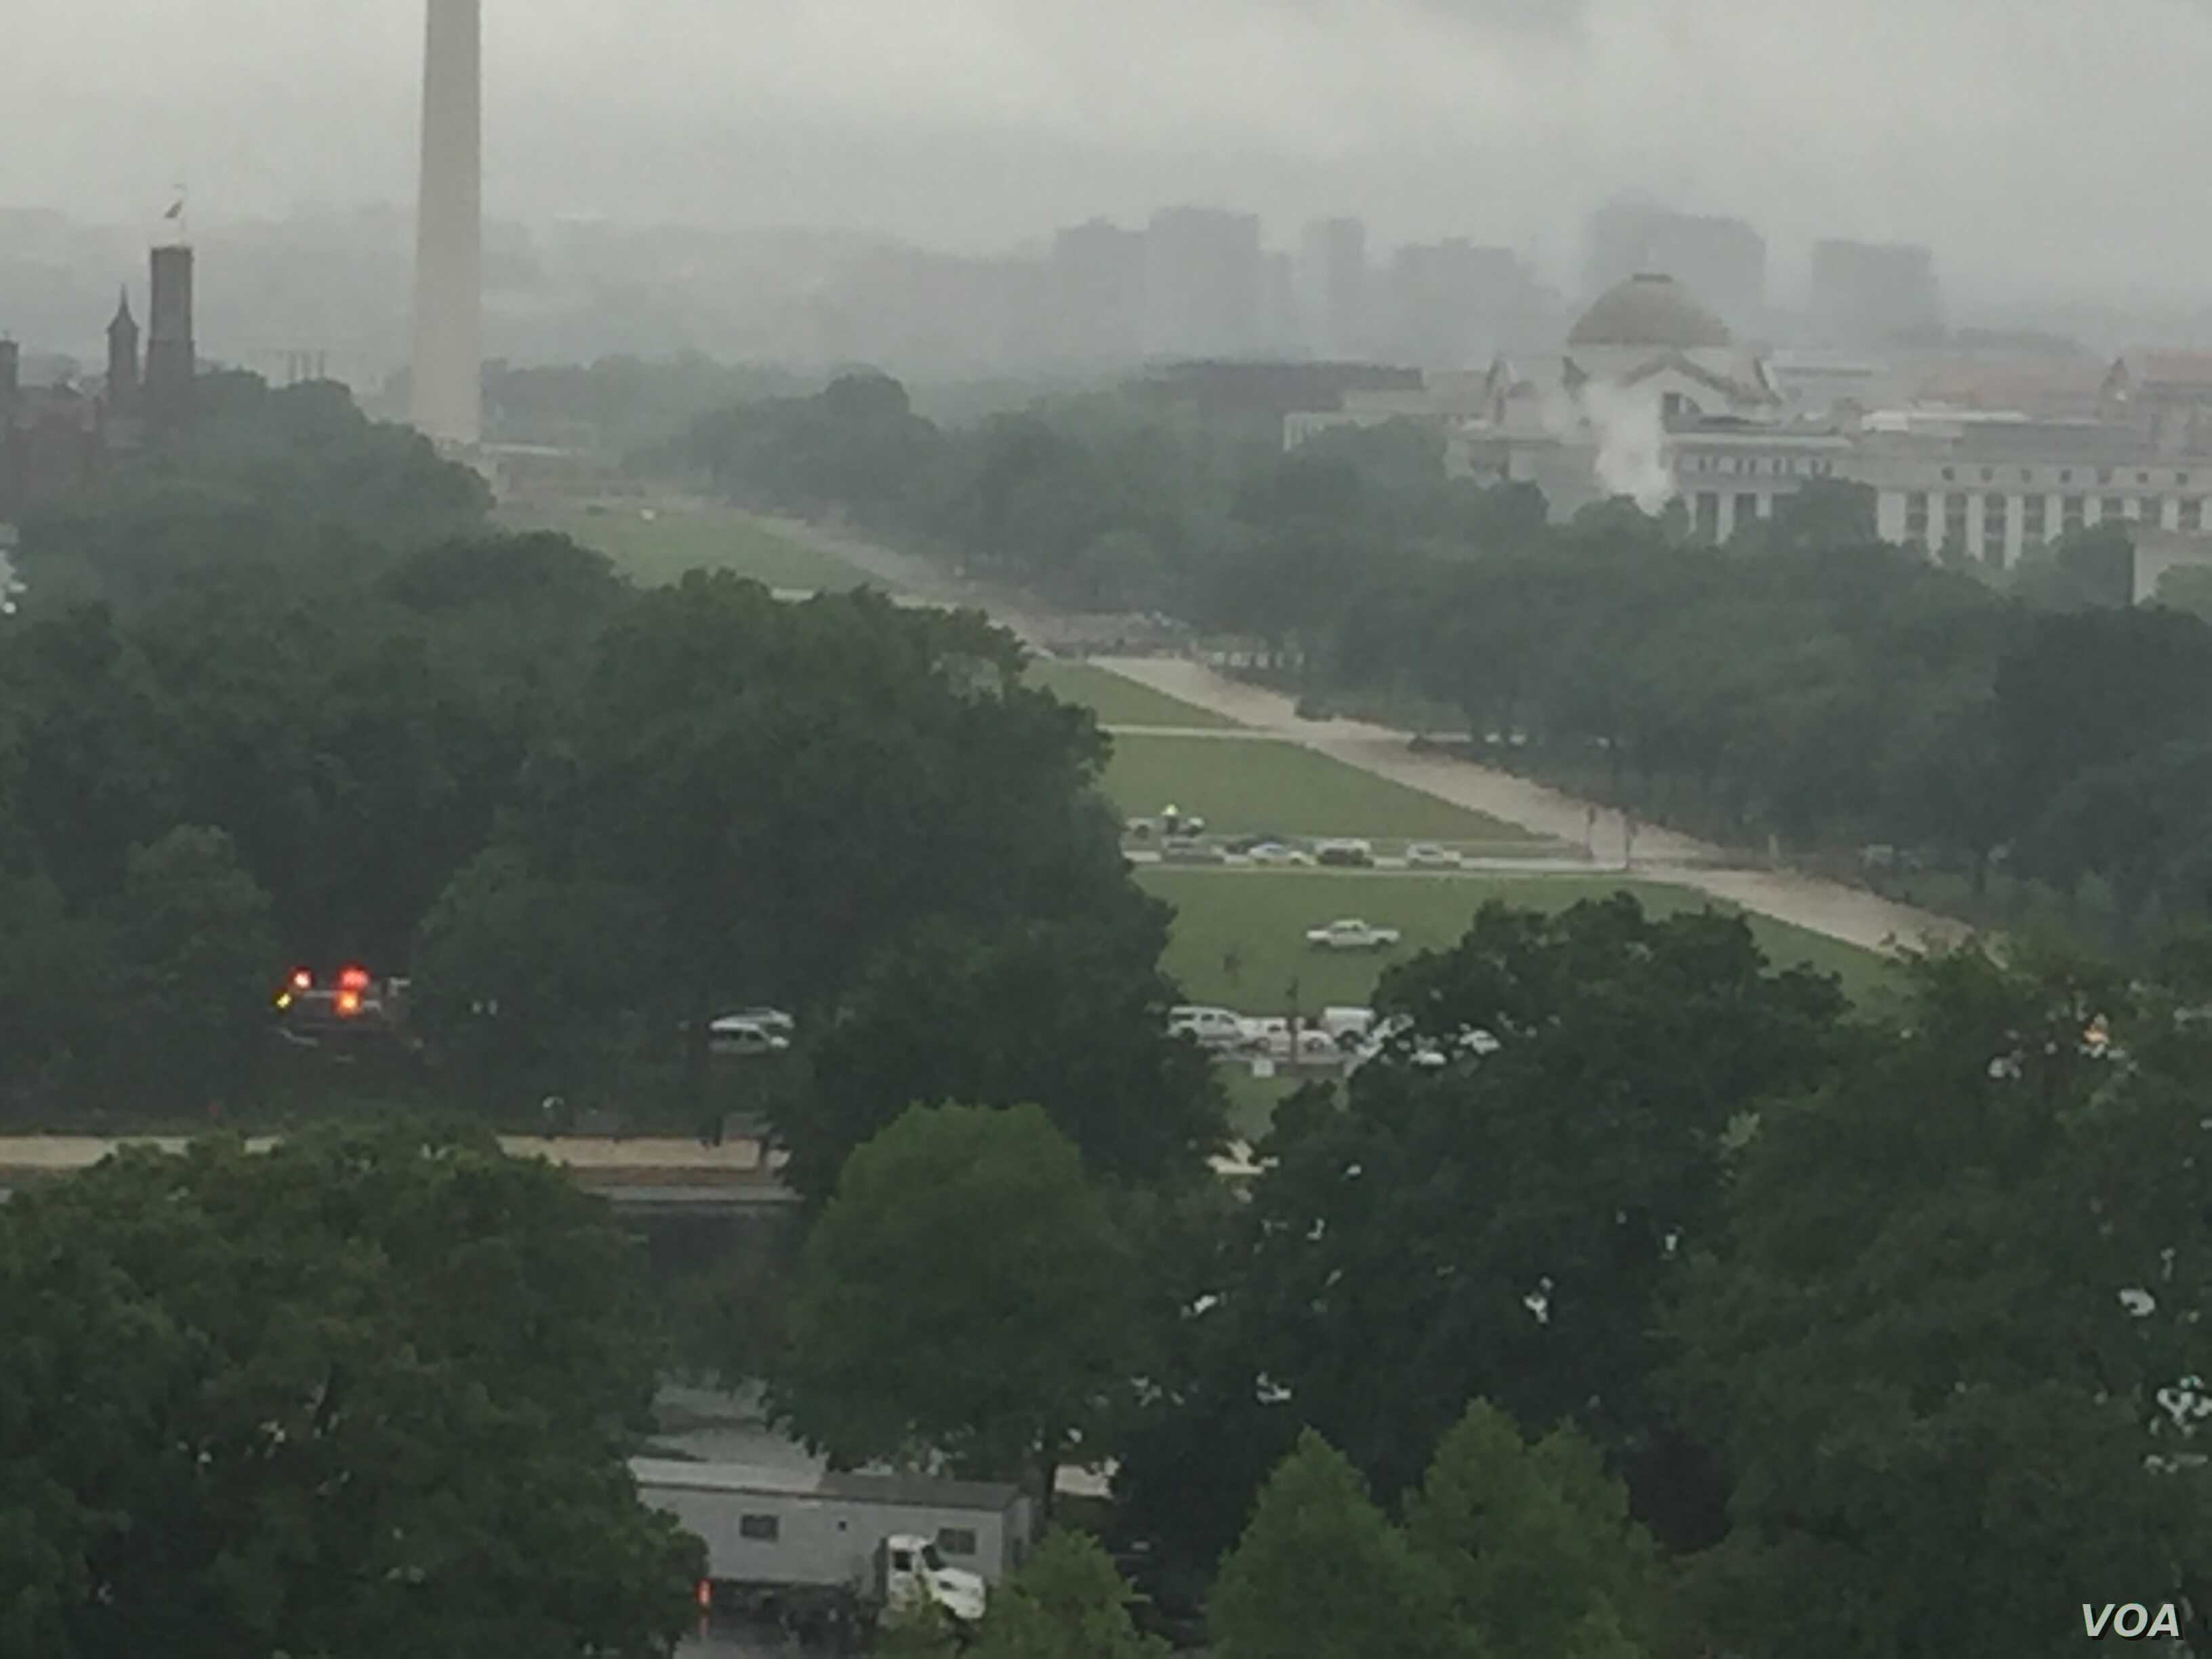 A man drove his truck onto the National Mall on Tuesday afternoon. (K. Gypson/VOA)